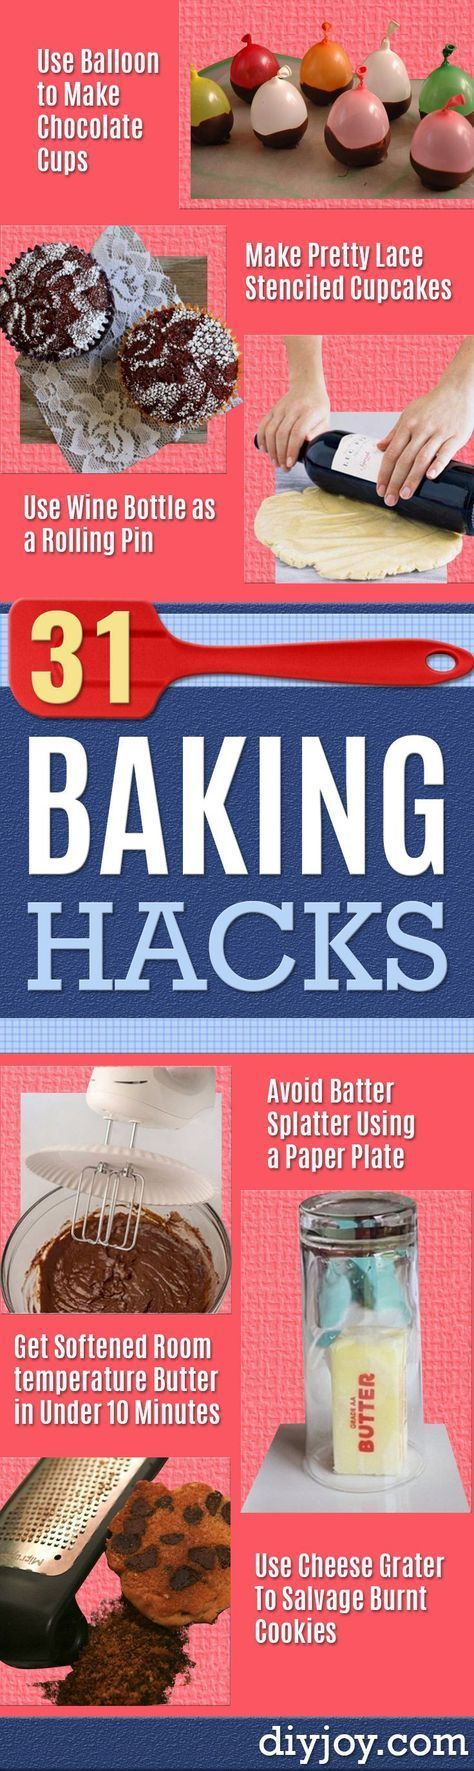 Love spending time in the kitchen baking amazing treats and desserts? So do I, and was I ever happy when I came across some of the most awesome baking hacks eve